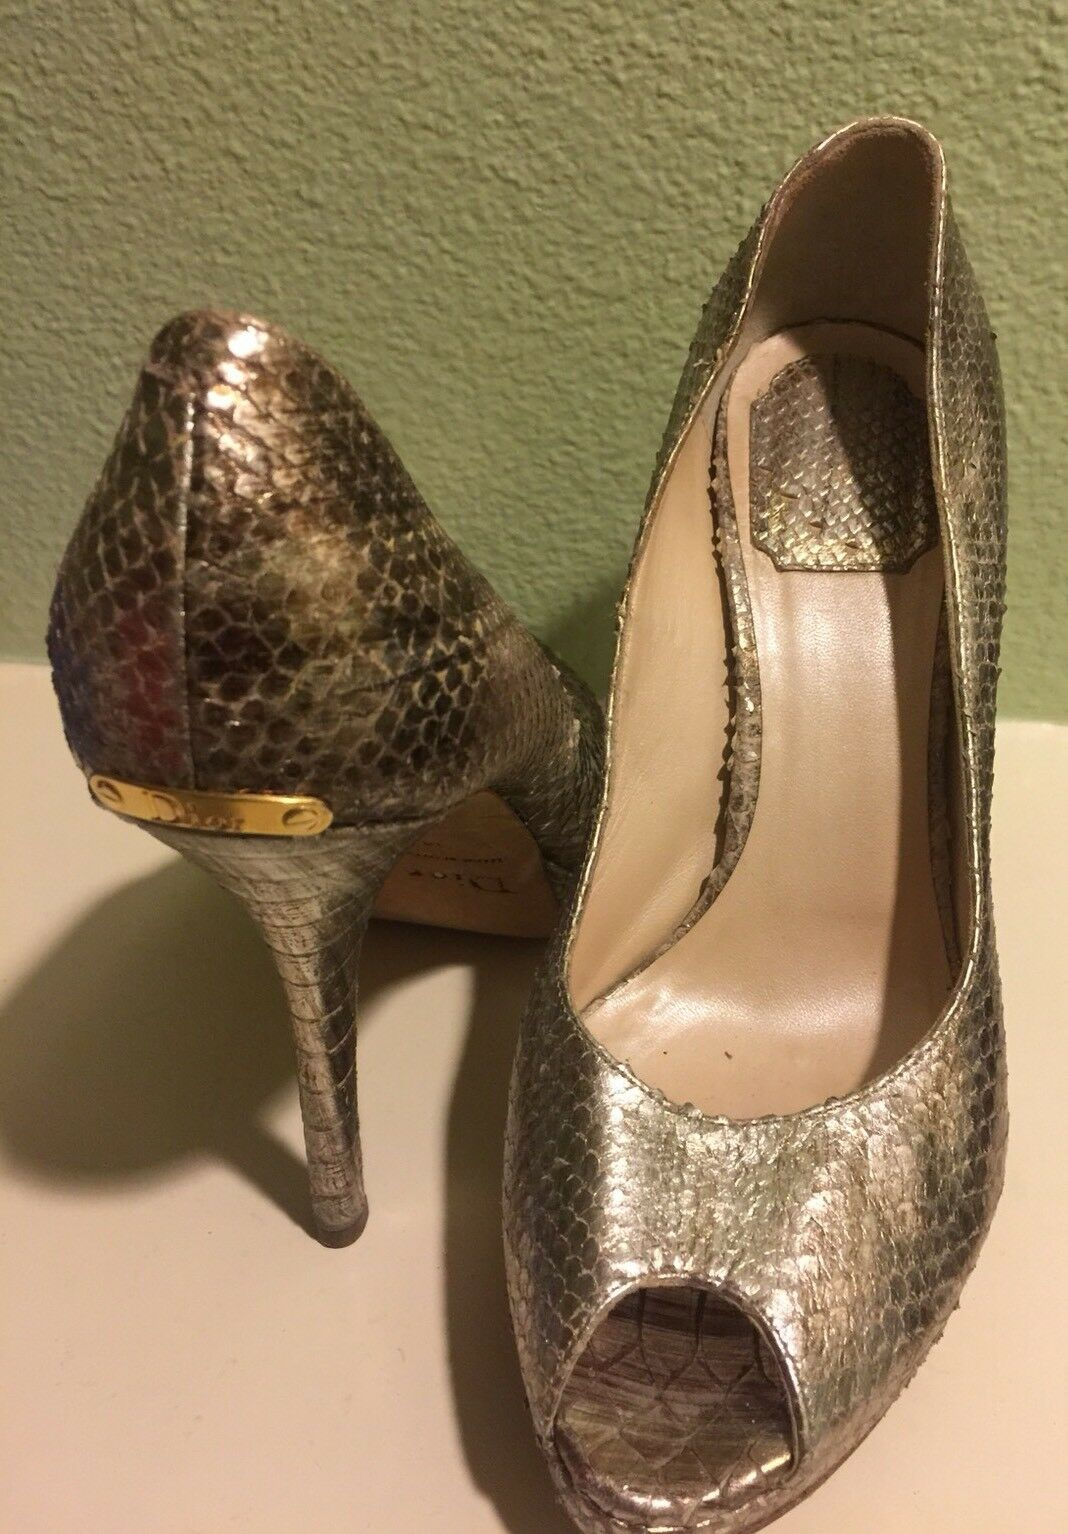 CHRISTIAN DIOR GOLDEN SIZE SIZE GOLDEN 38 SNAKE PLATFORM SHOES 91d0e1